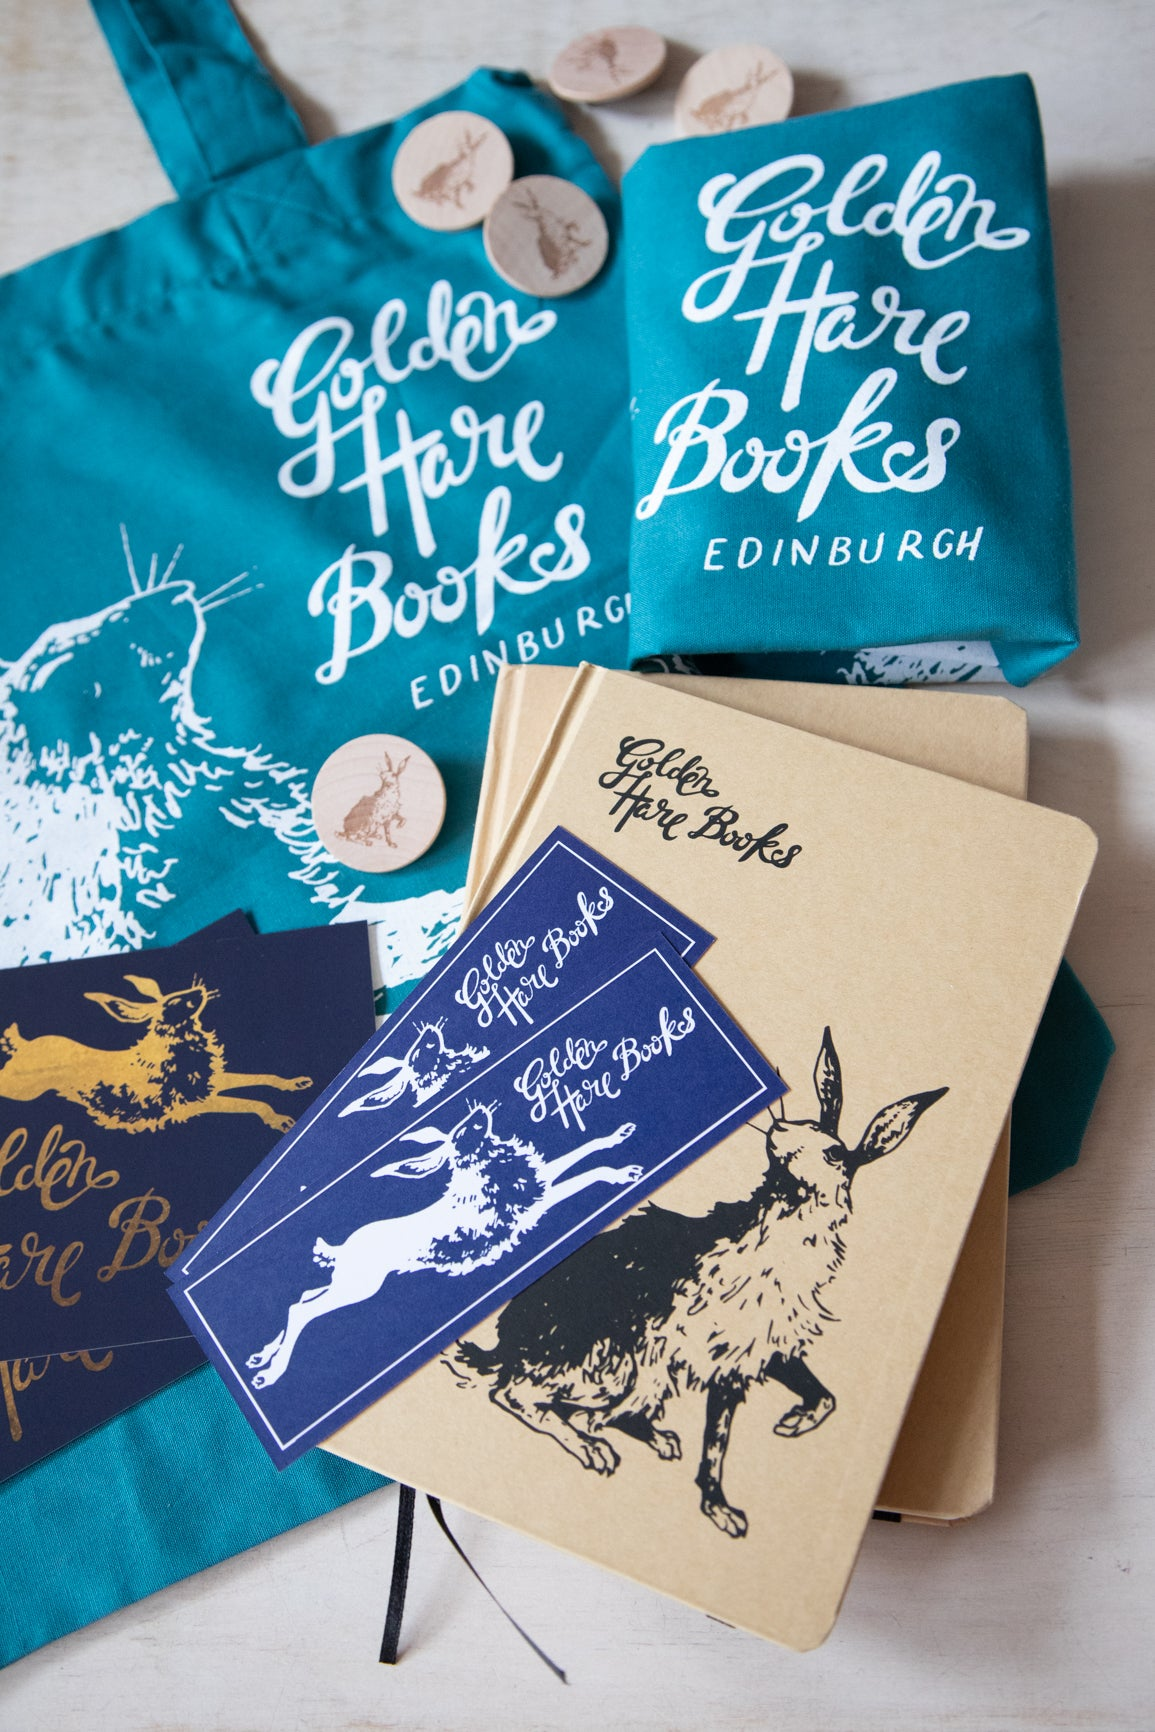 Golden Hare Books merch bundle